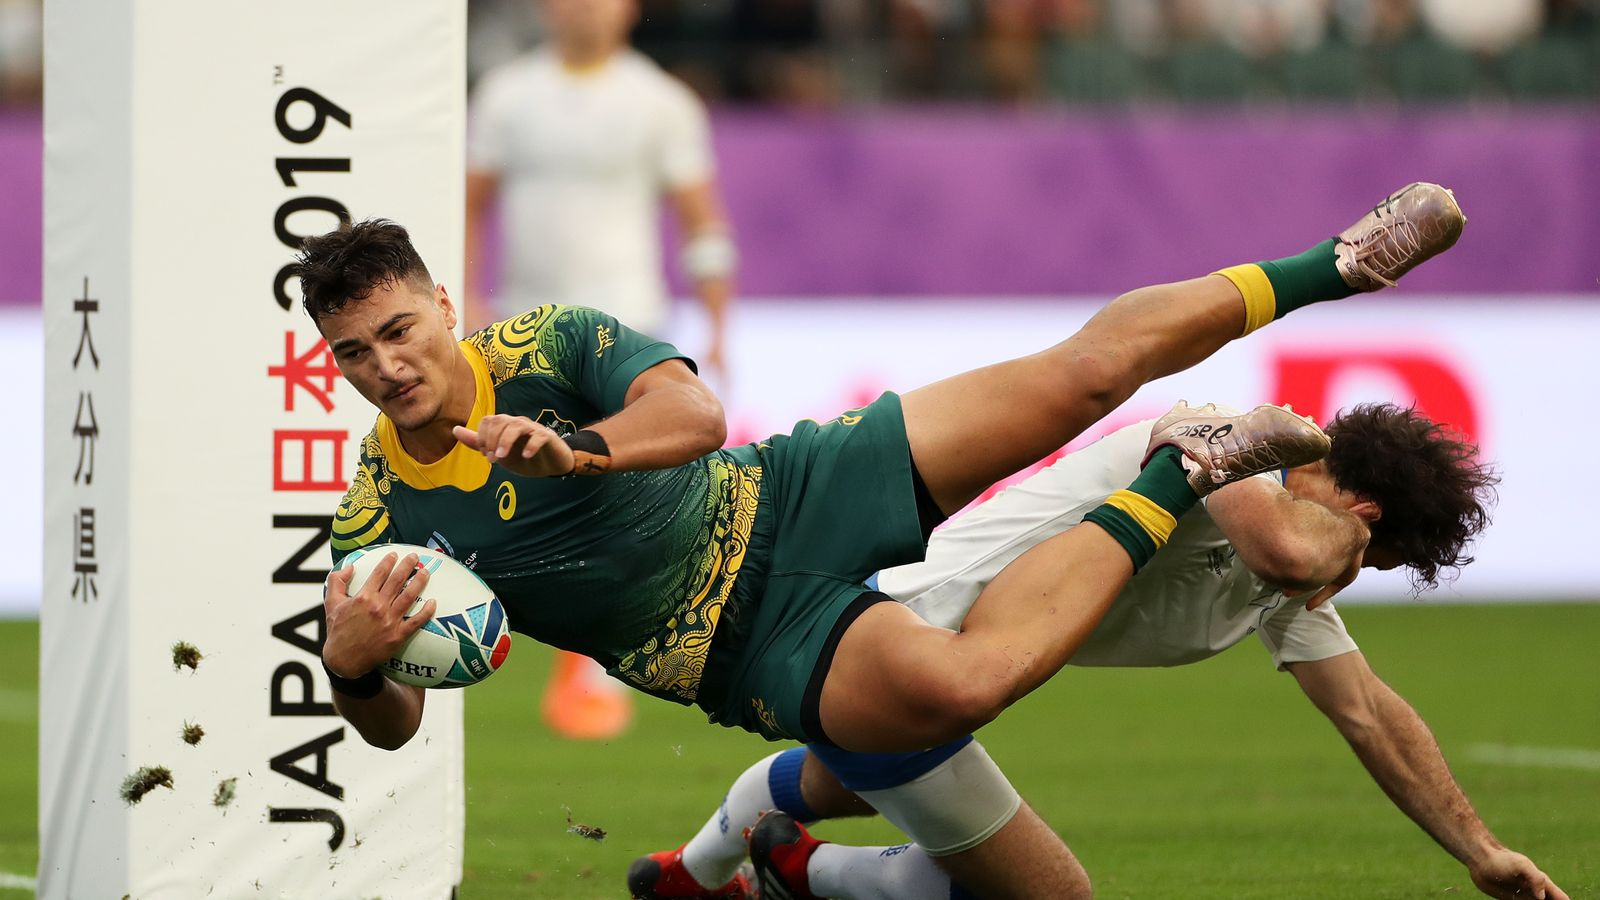 Wallabies centre Jordan Petaia ruled out of rest of Super Rugby season